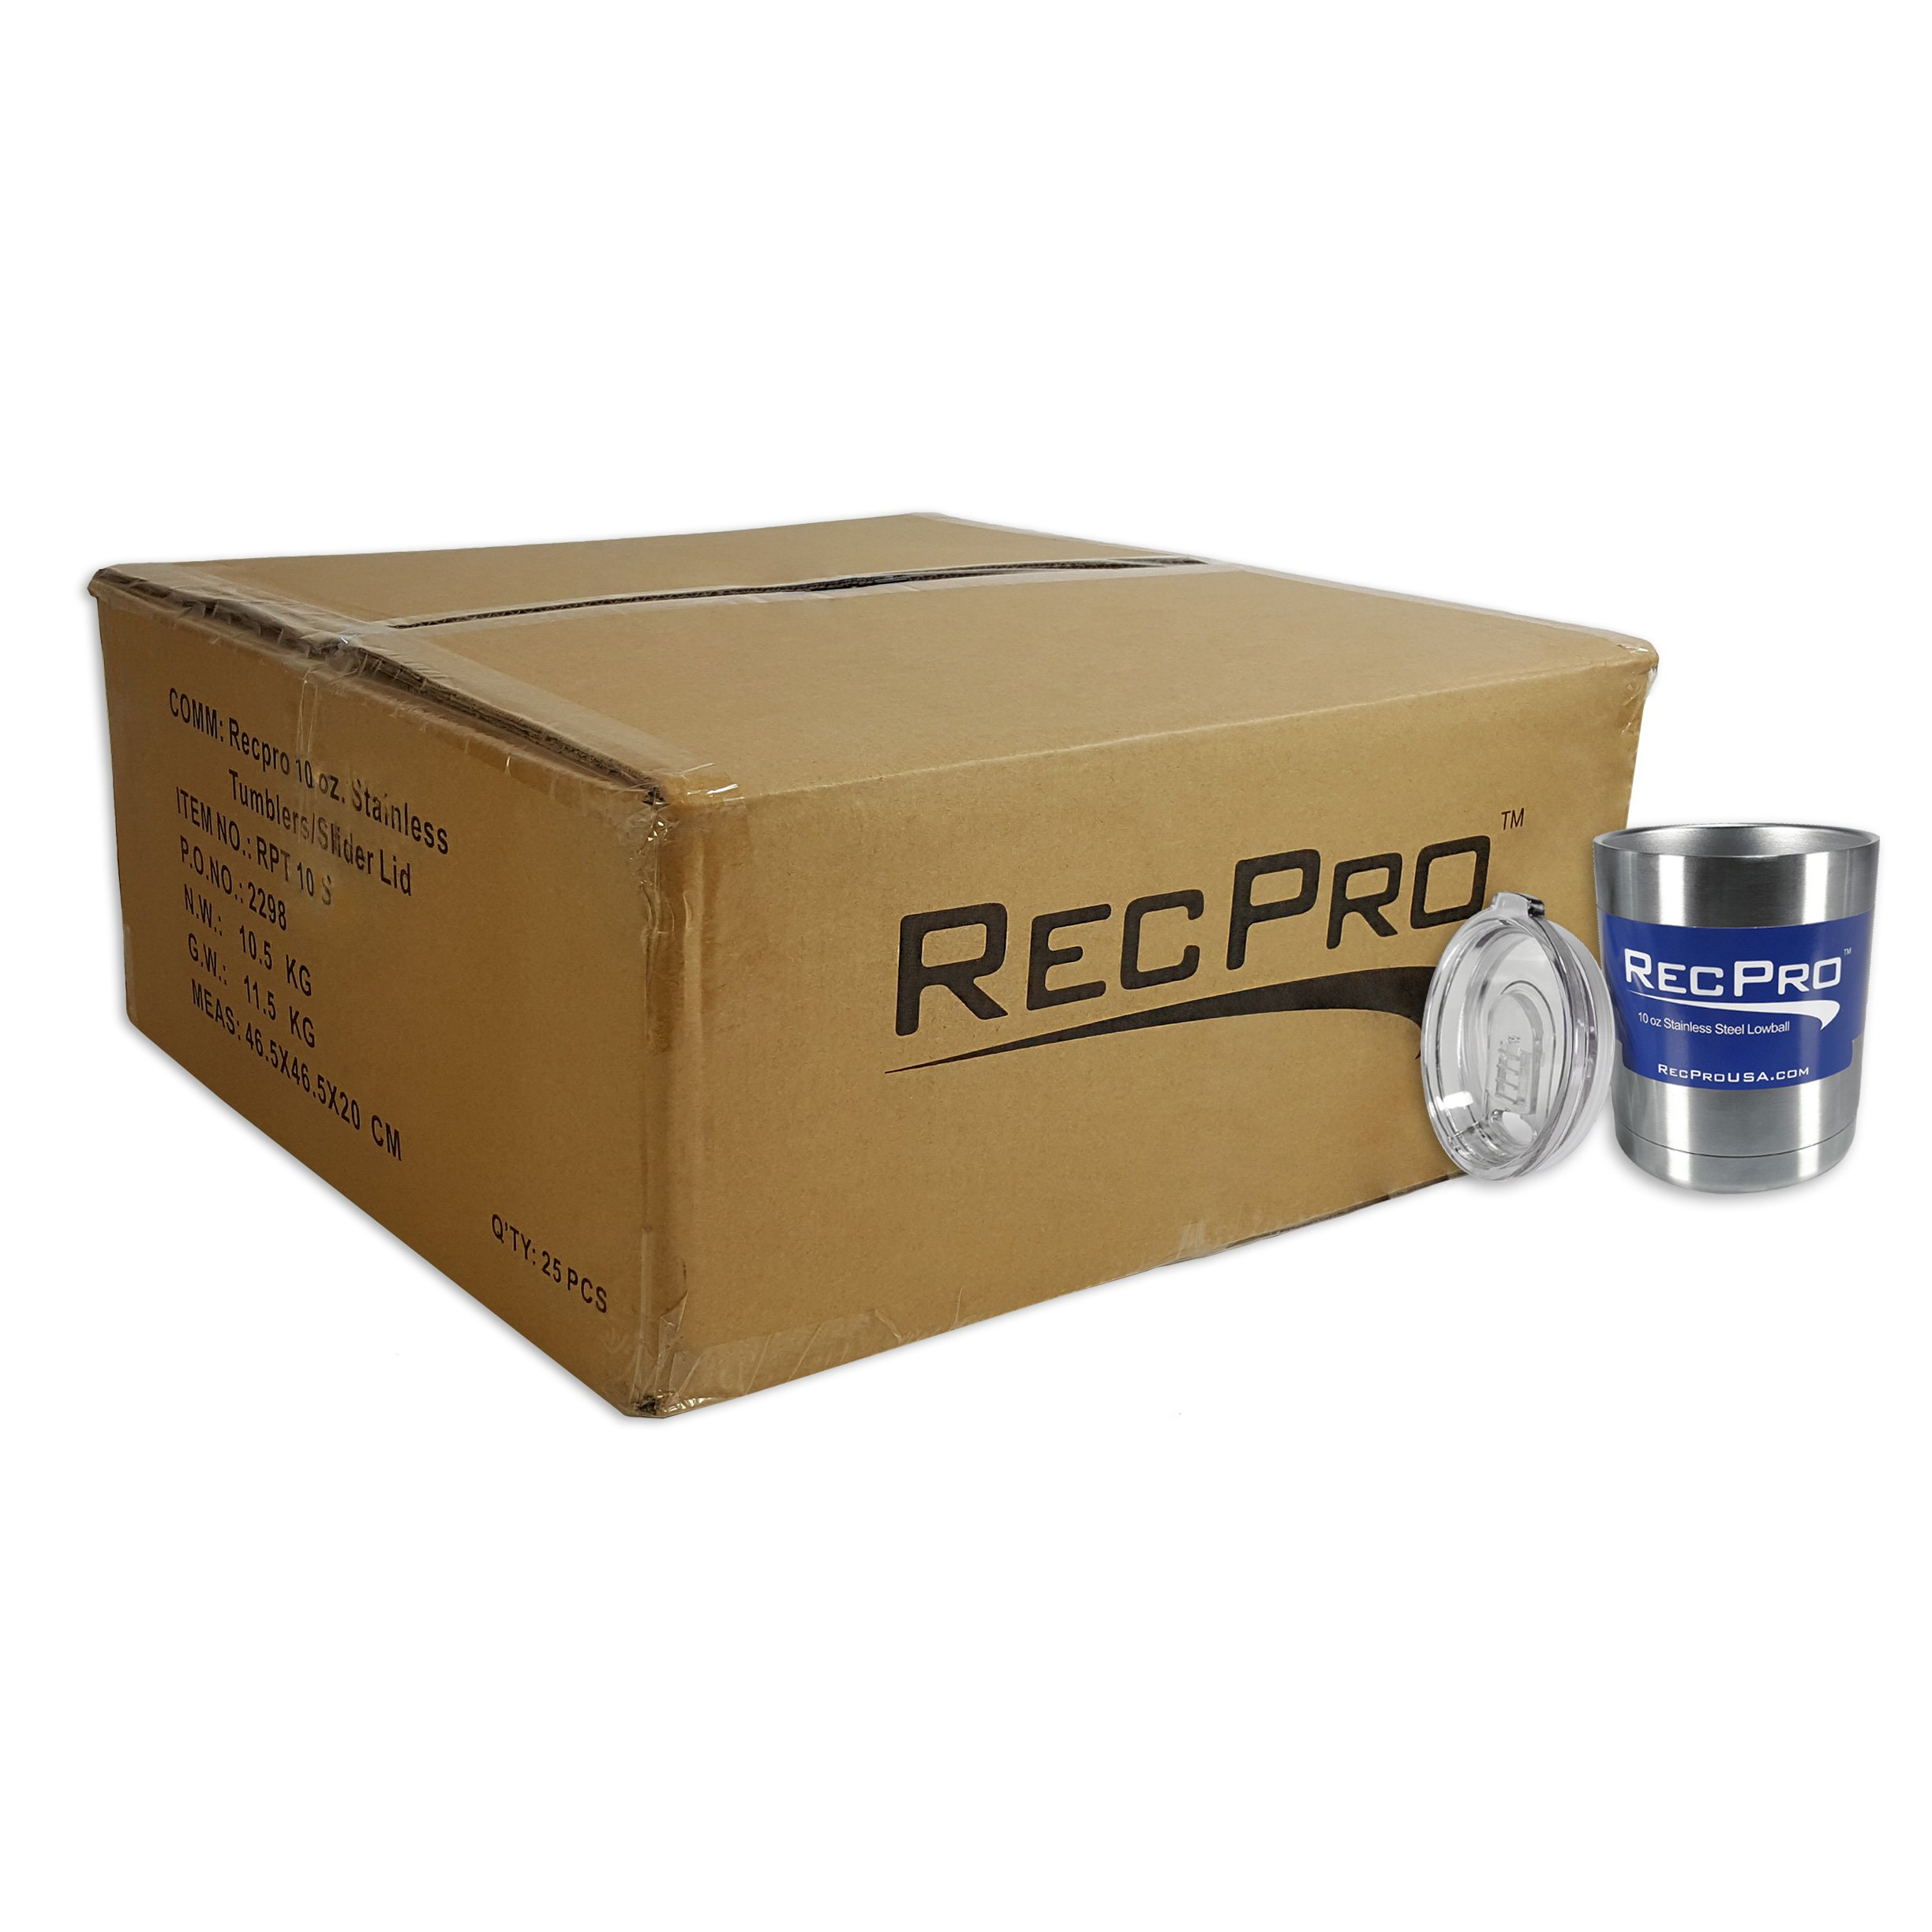 x25 RecPro 10oz Lowball Tumbler Vacuum Insulated 18/8 Stainless Steel Cup w/ Slider Lid